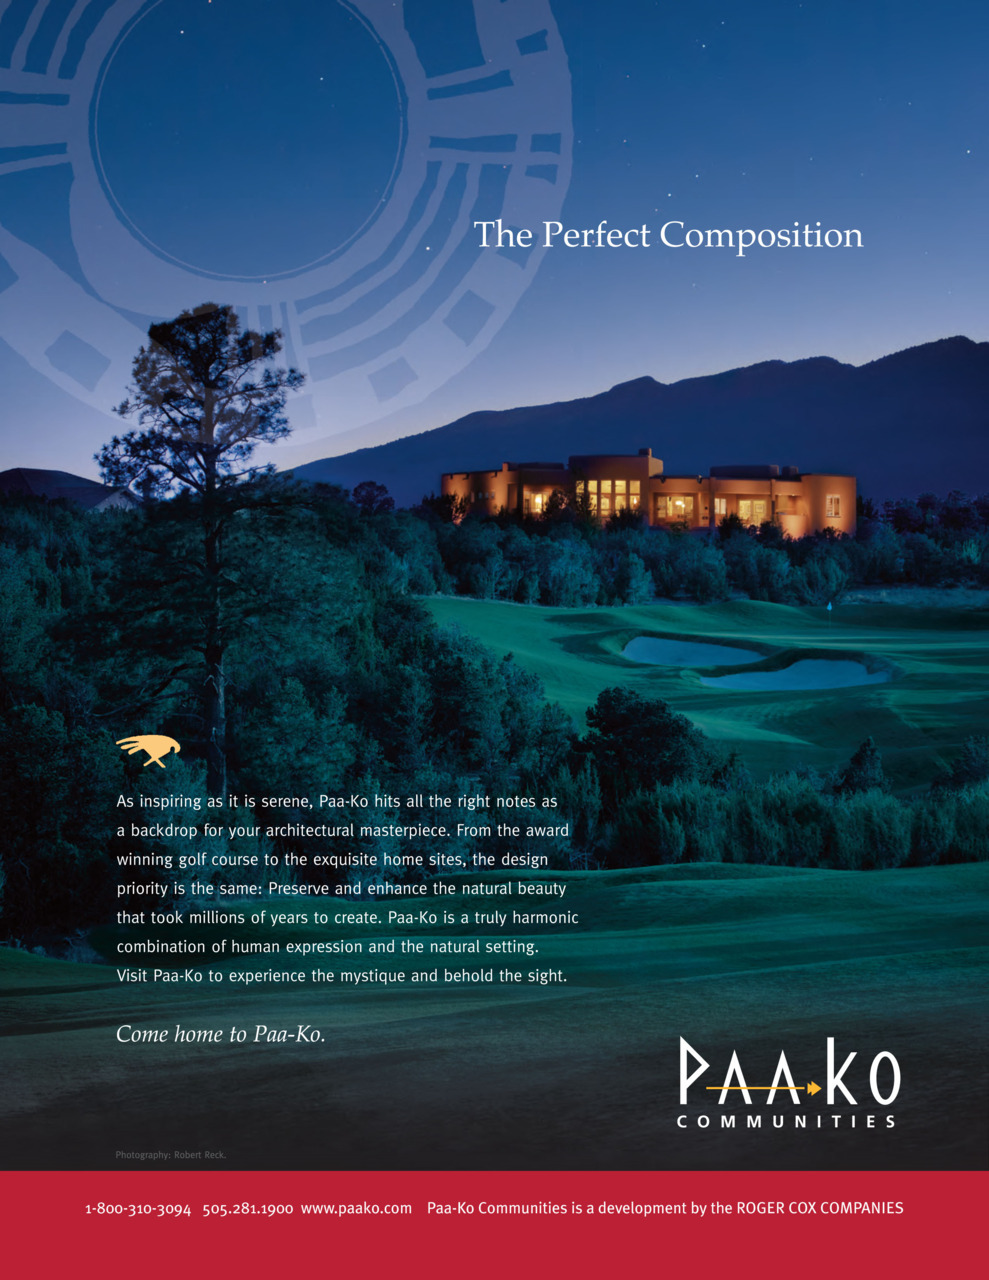 This is my photo, used in an ad for Paa-ko Golf Communities. It ran in the 2011 Santa Fe Opera program. All work on this image was accomplished in Photoshop.  There are no gross adjustments or manipulations here but  simply the layering of information accumulated in various exposures over  time.  Because we are familiar with 'day for night' from  the film and video world, I shot the raking sunlight at the end of the  day first, then the lit house, then shot the sky and finally the stars.   Each was composited together while changing the warm sunlight to a cool  moonlit look to add drama and articulate the golf course.